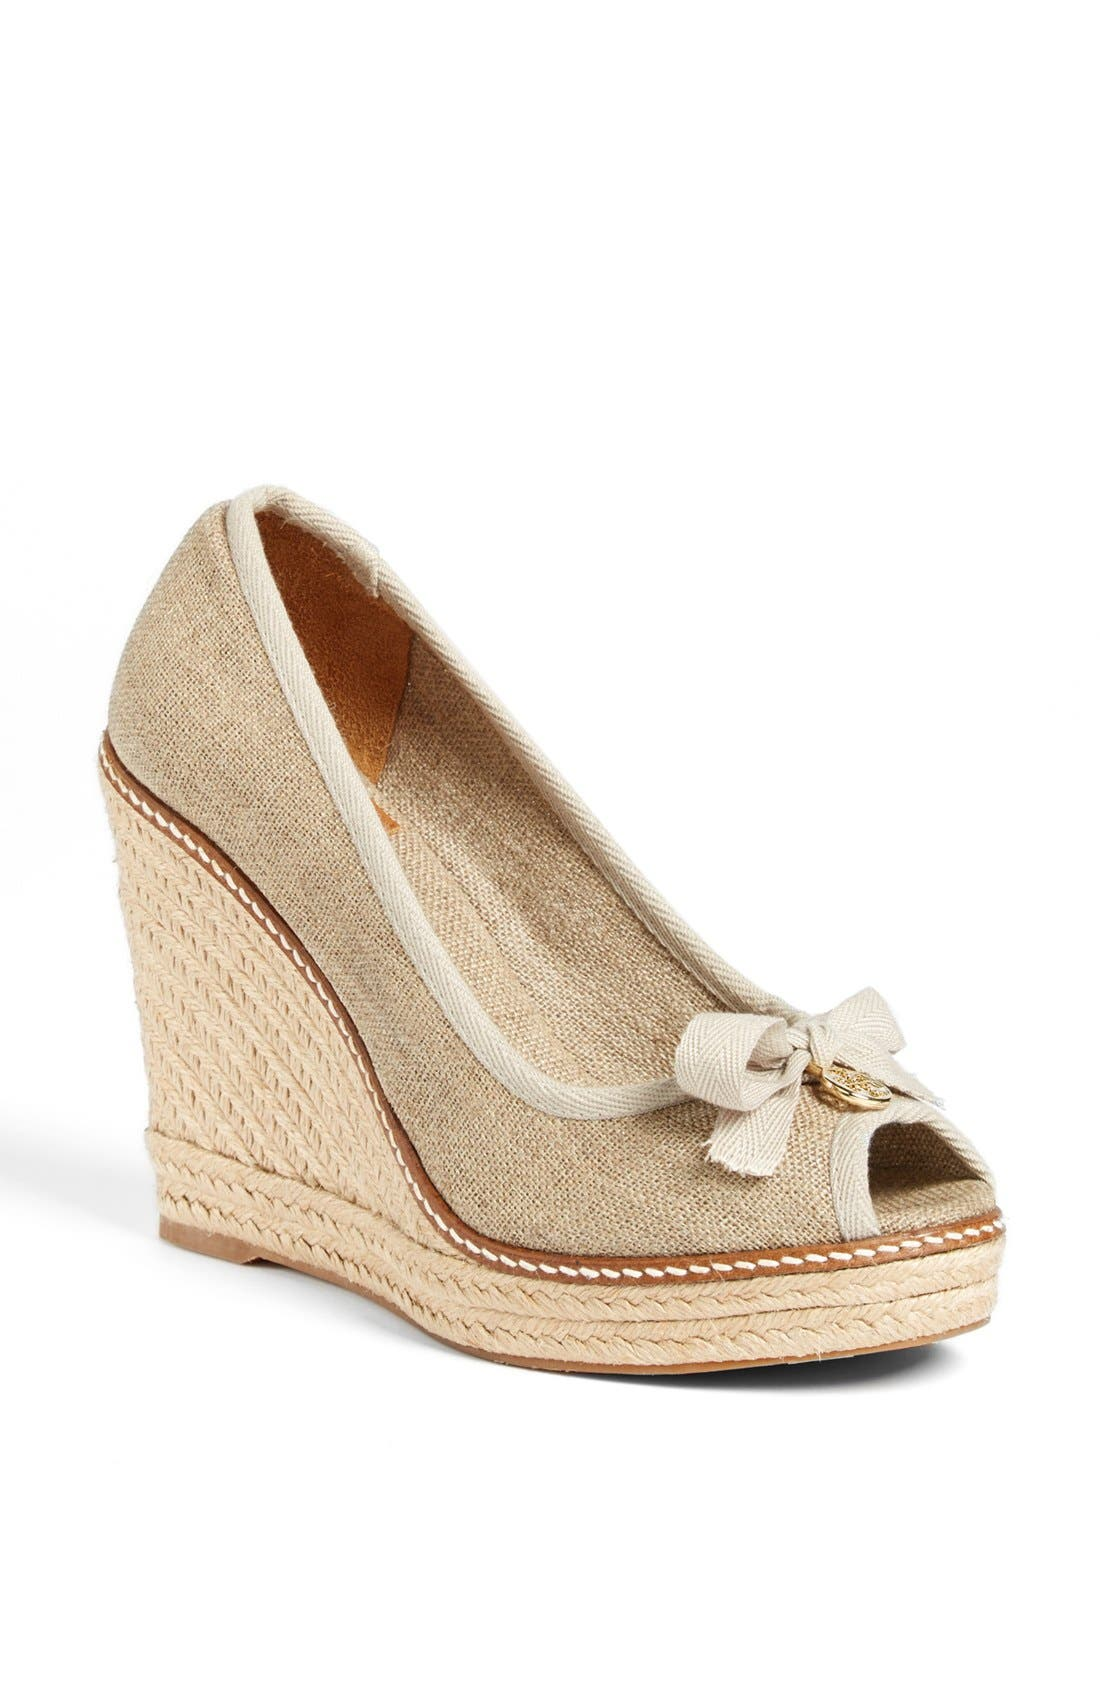 Main Image - Tory Burch 'Jackie' Espadrille Wedge